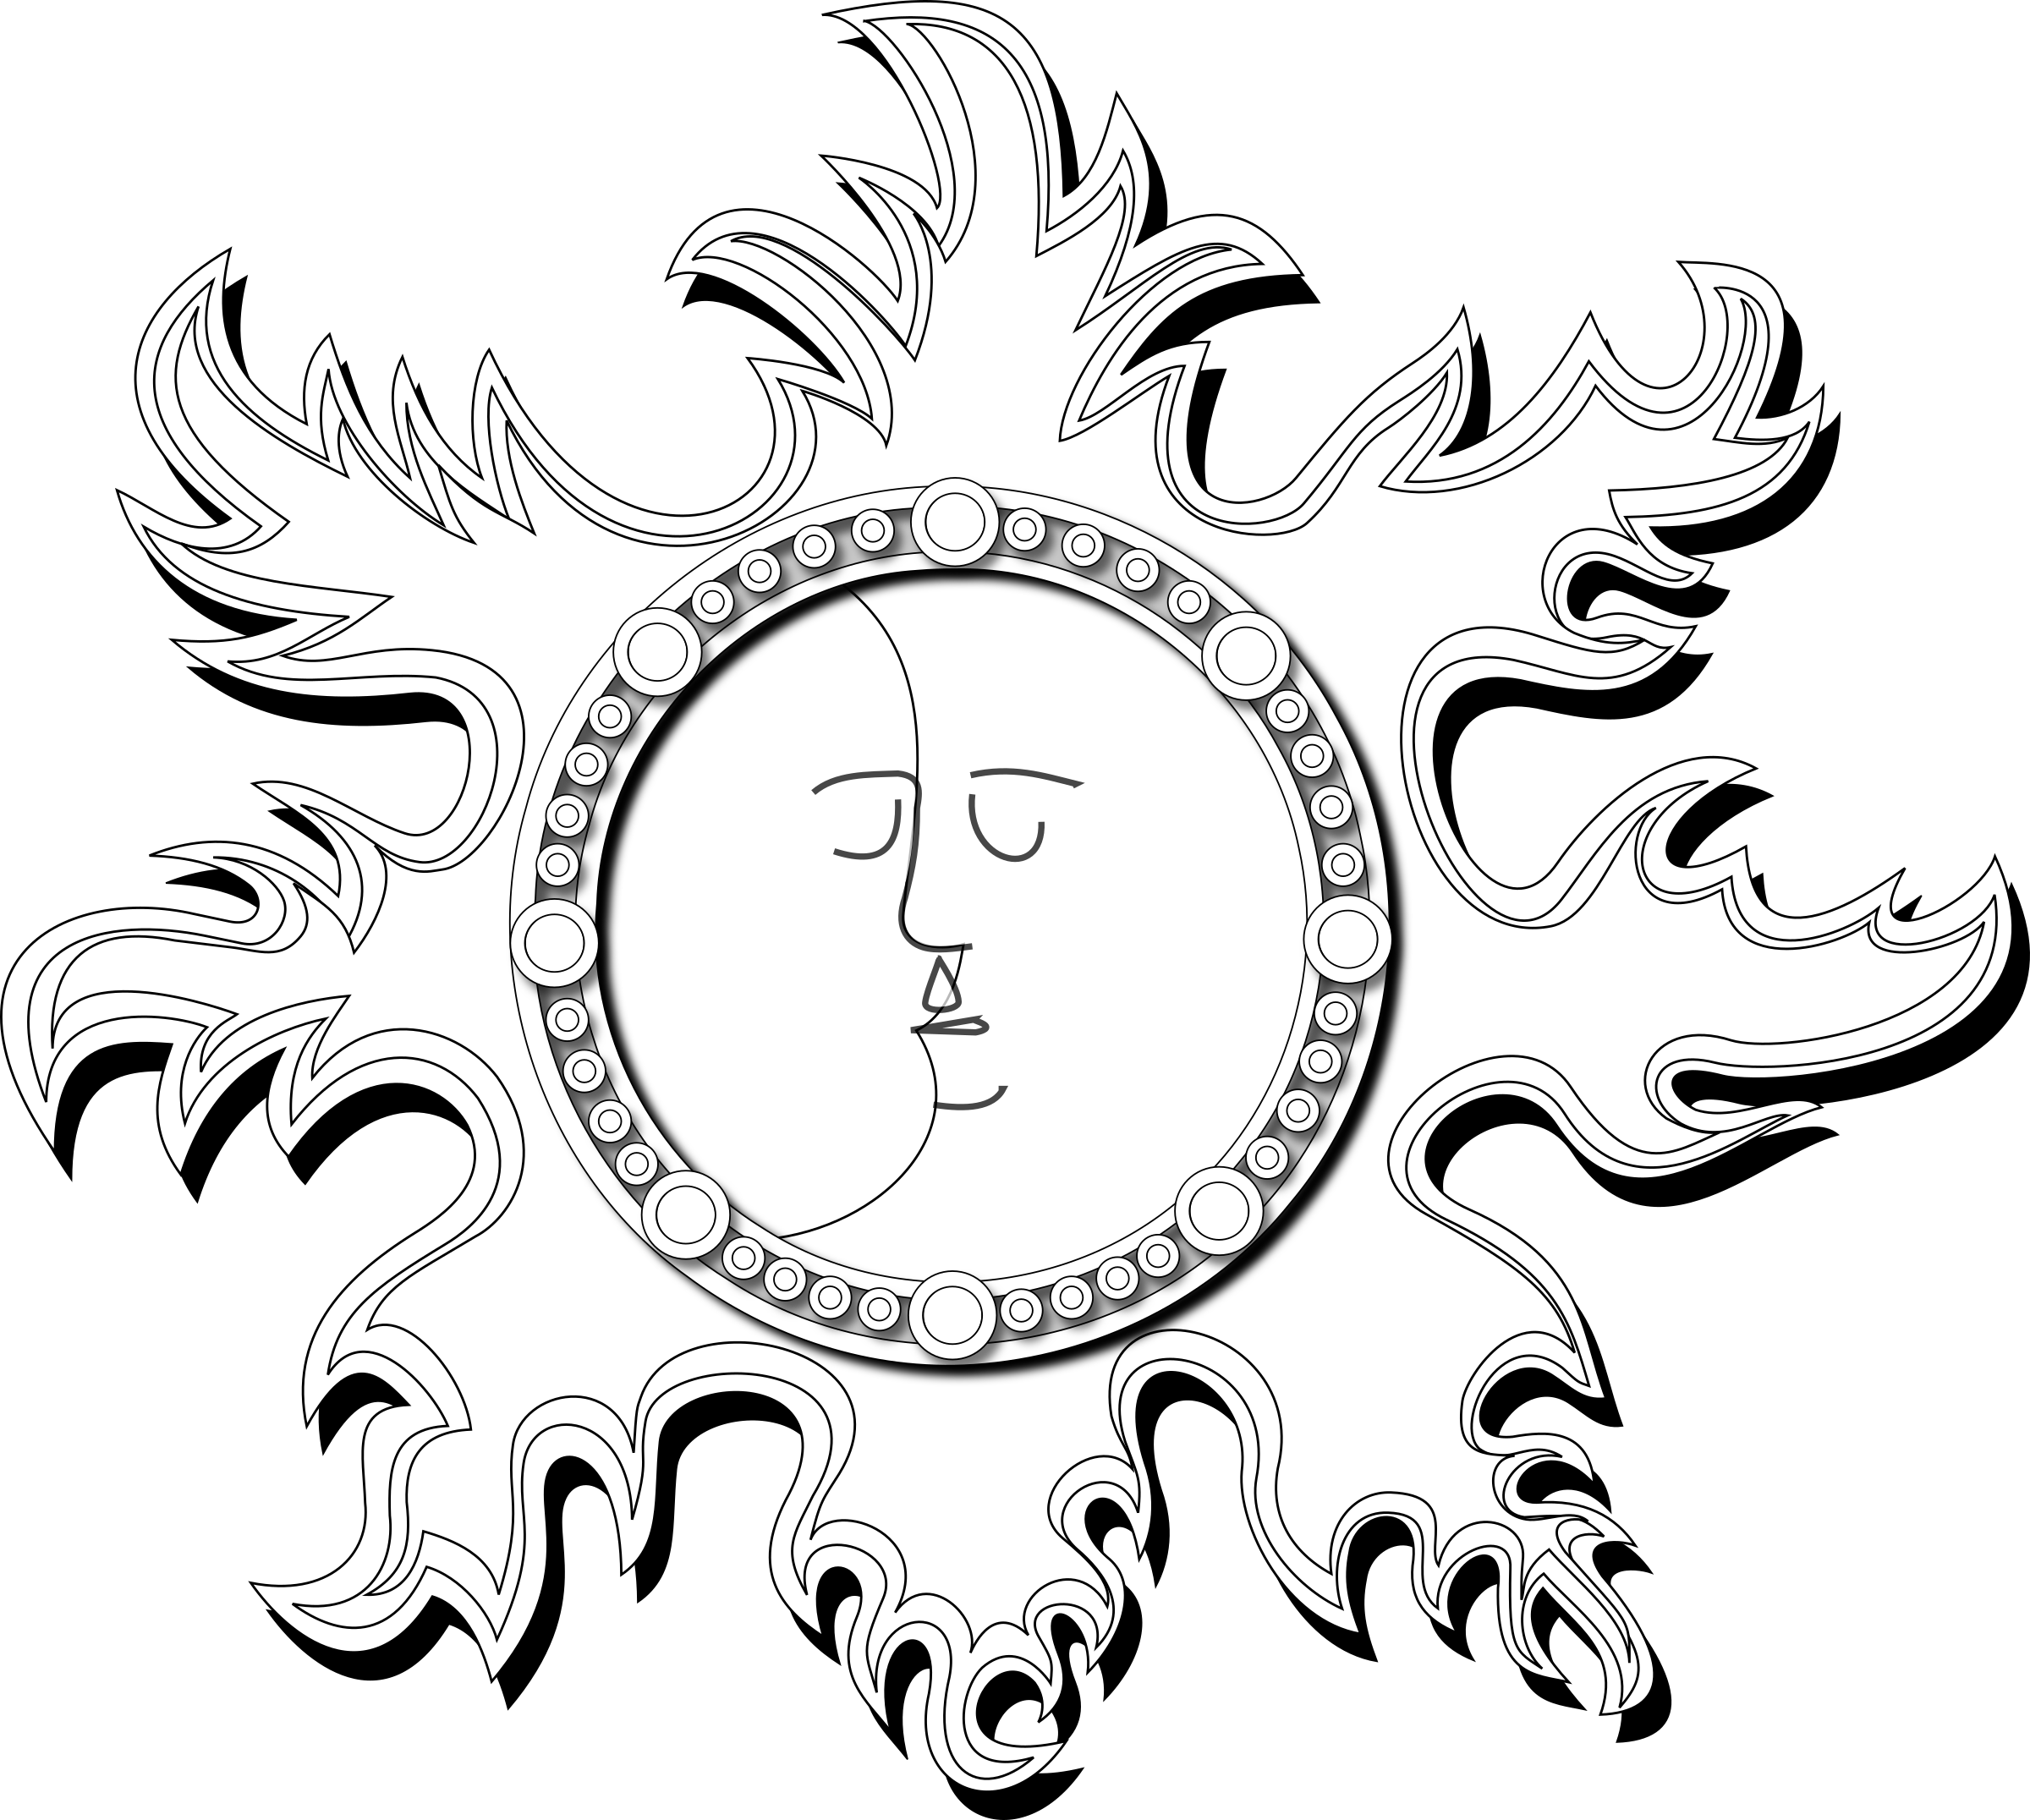 Earth sun and moon clipart black and white clip art freeuse Moon Outline Drawing at GetDrawings.com | Free for personal use Moon ... clip art freeuse